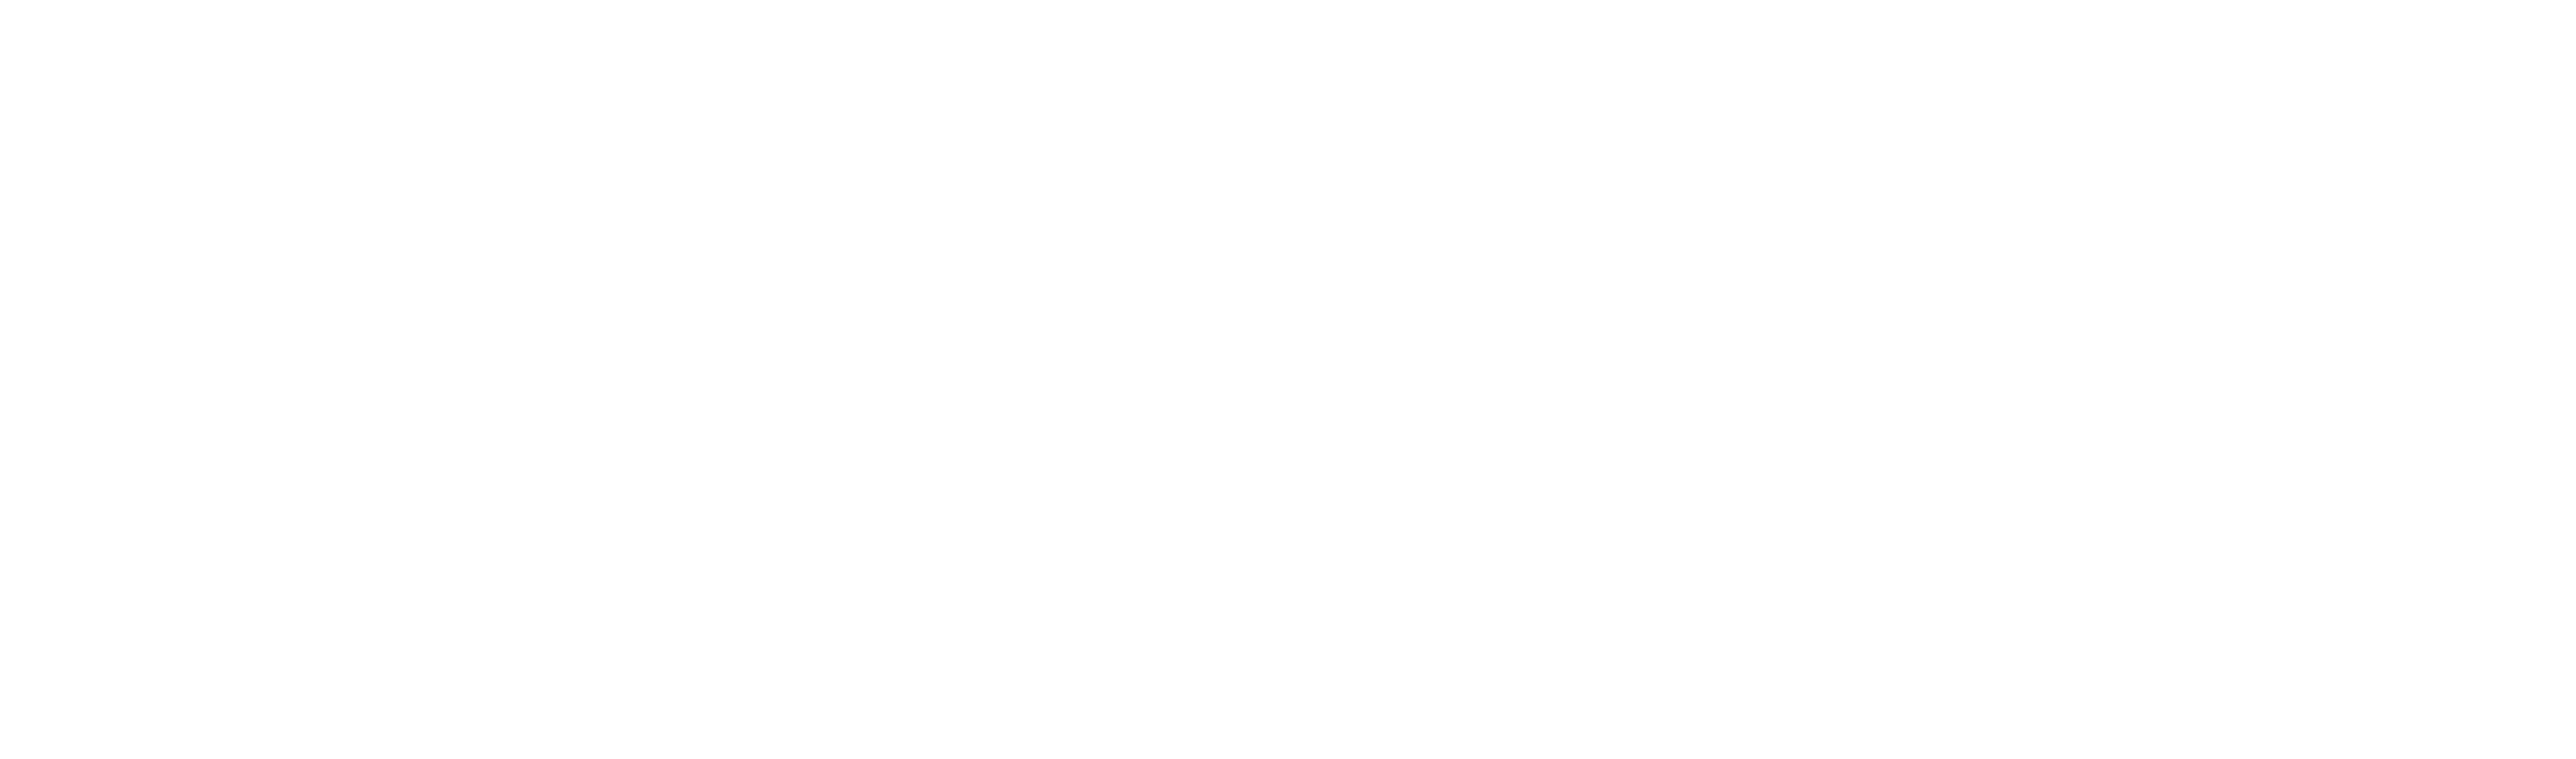 HollyBilly Farms logo